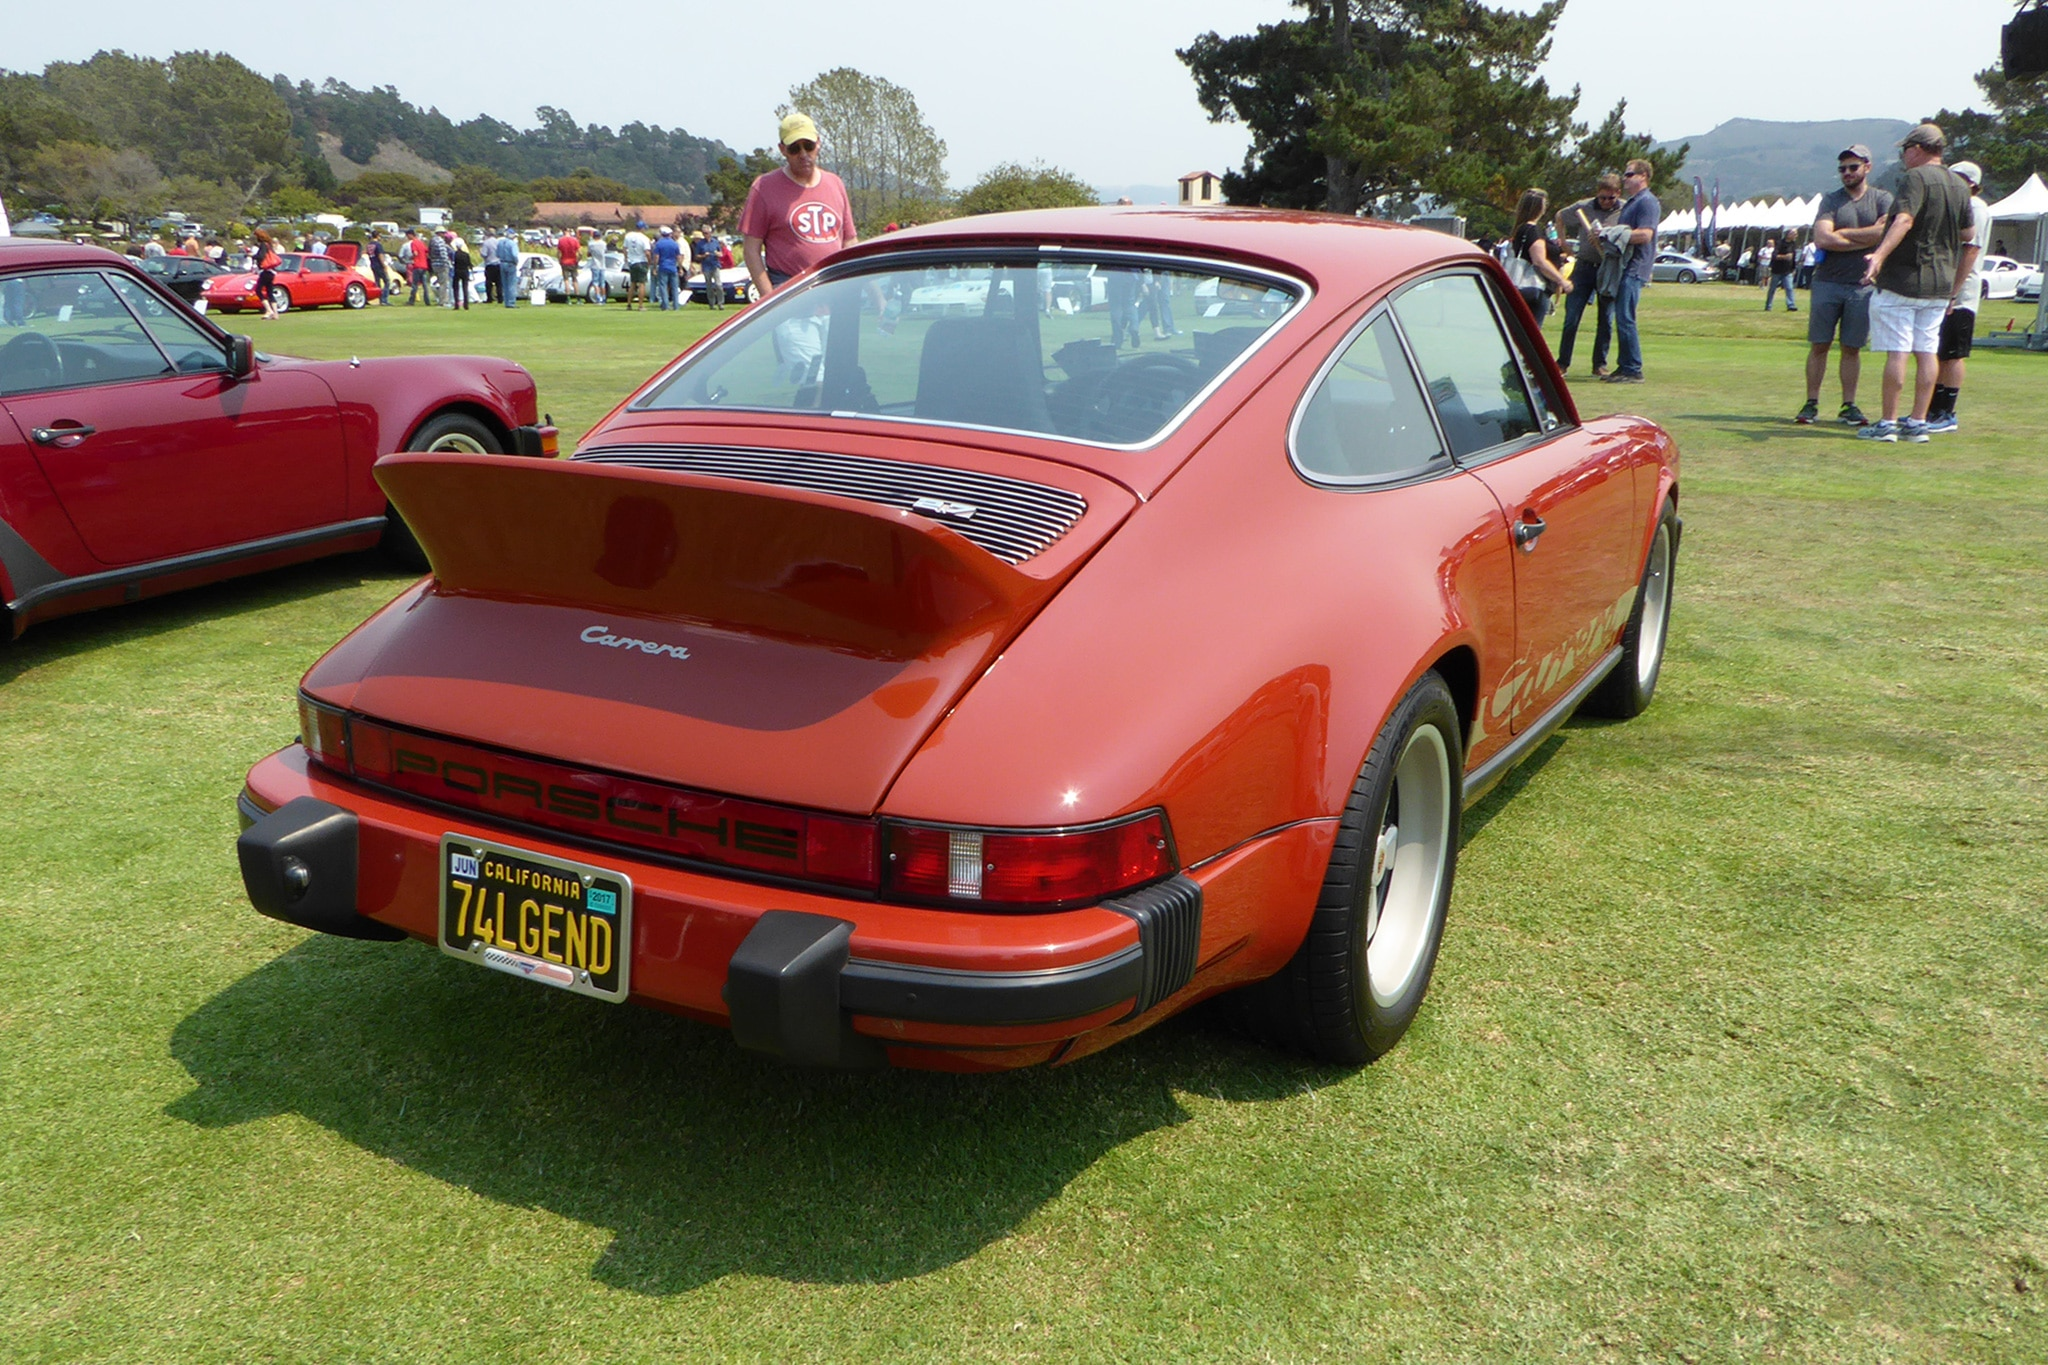 Porsche 911 Carrera Rear Three Quarter